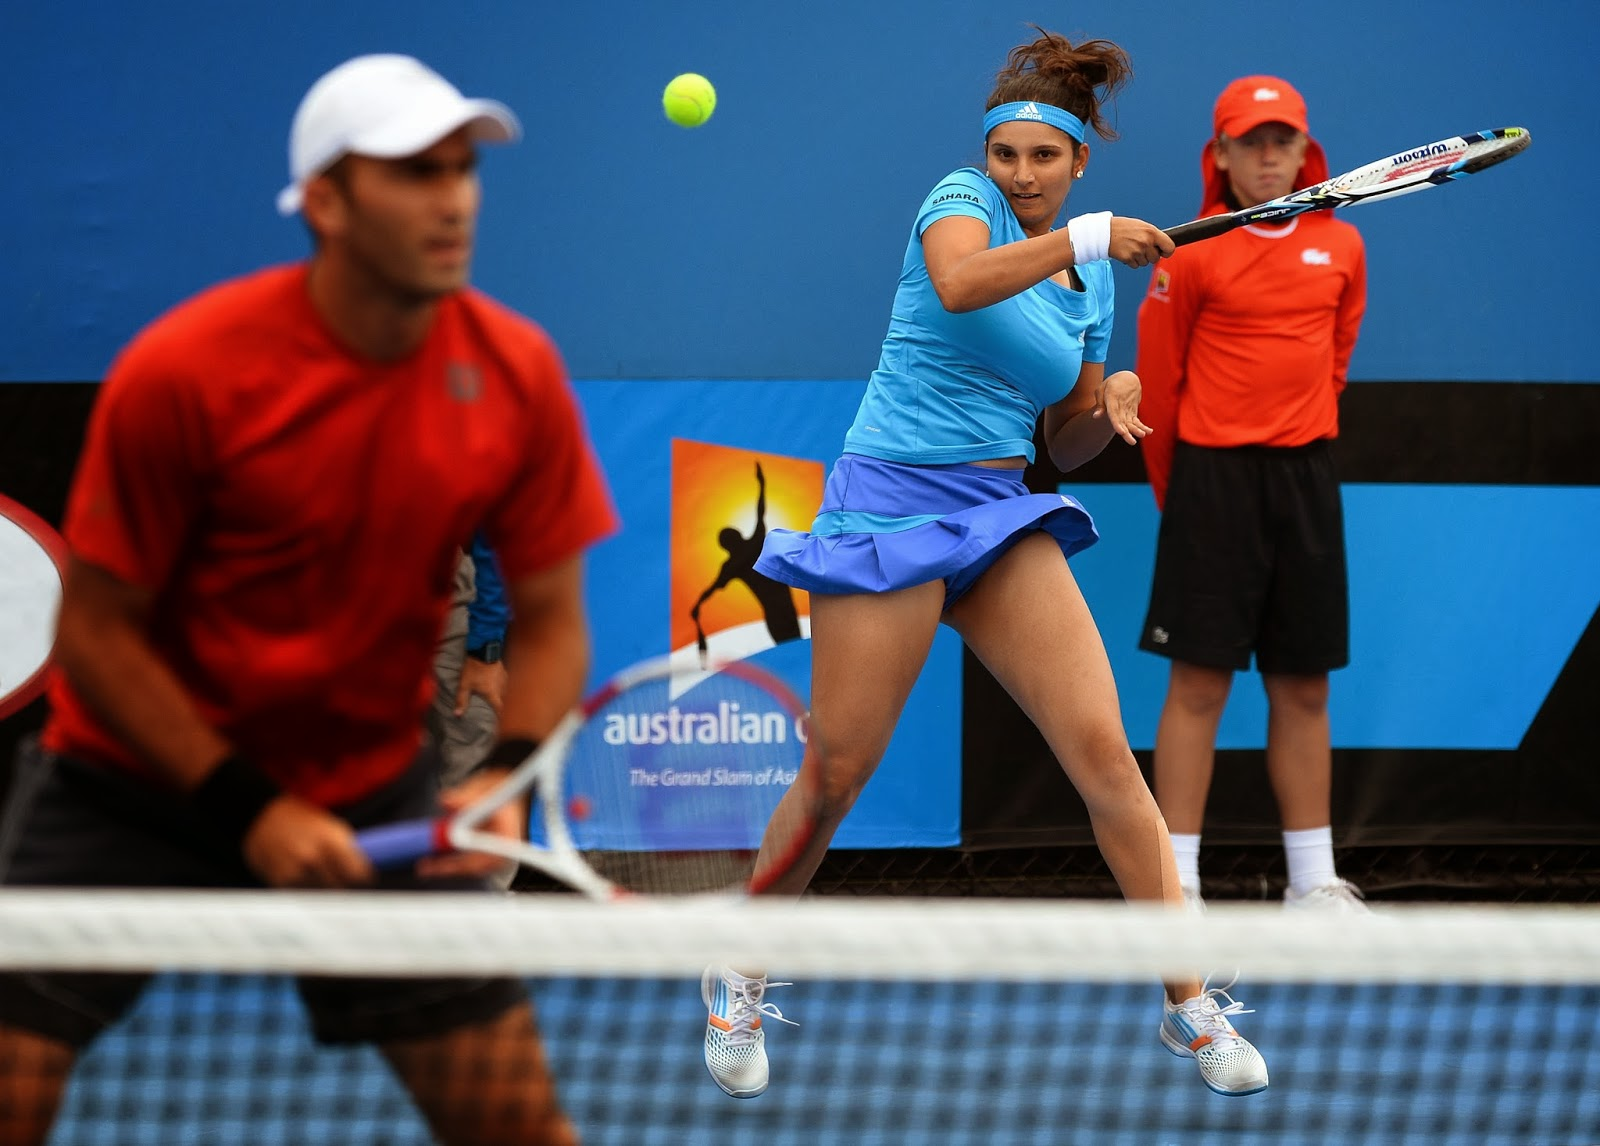 2014, Australia, Australian Open, Match, Melbourne, Russia, Sports, Tennis, Tournament, Women, Mixed Doubles, Horia Tecau, Romania, India, Sania Mirza,